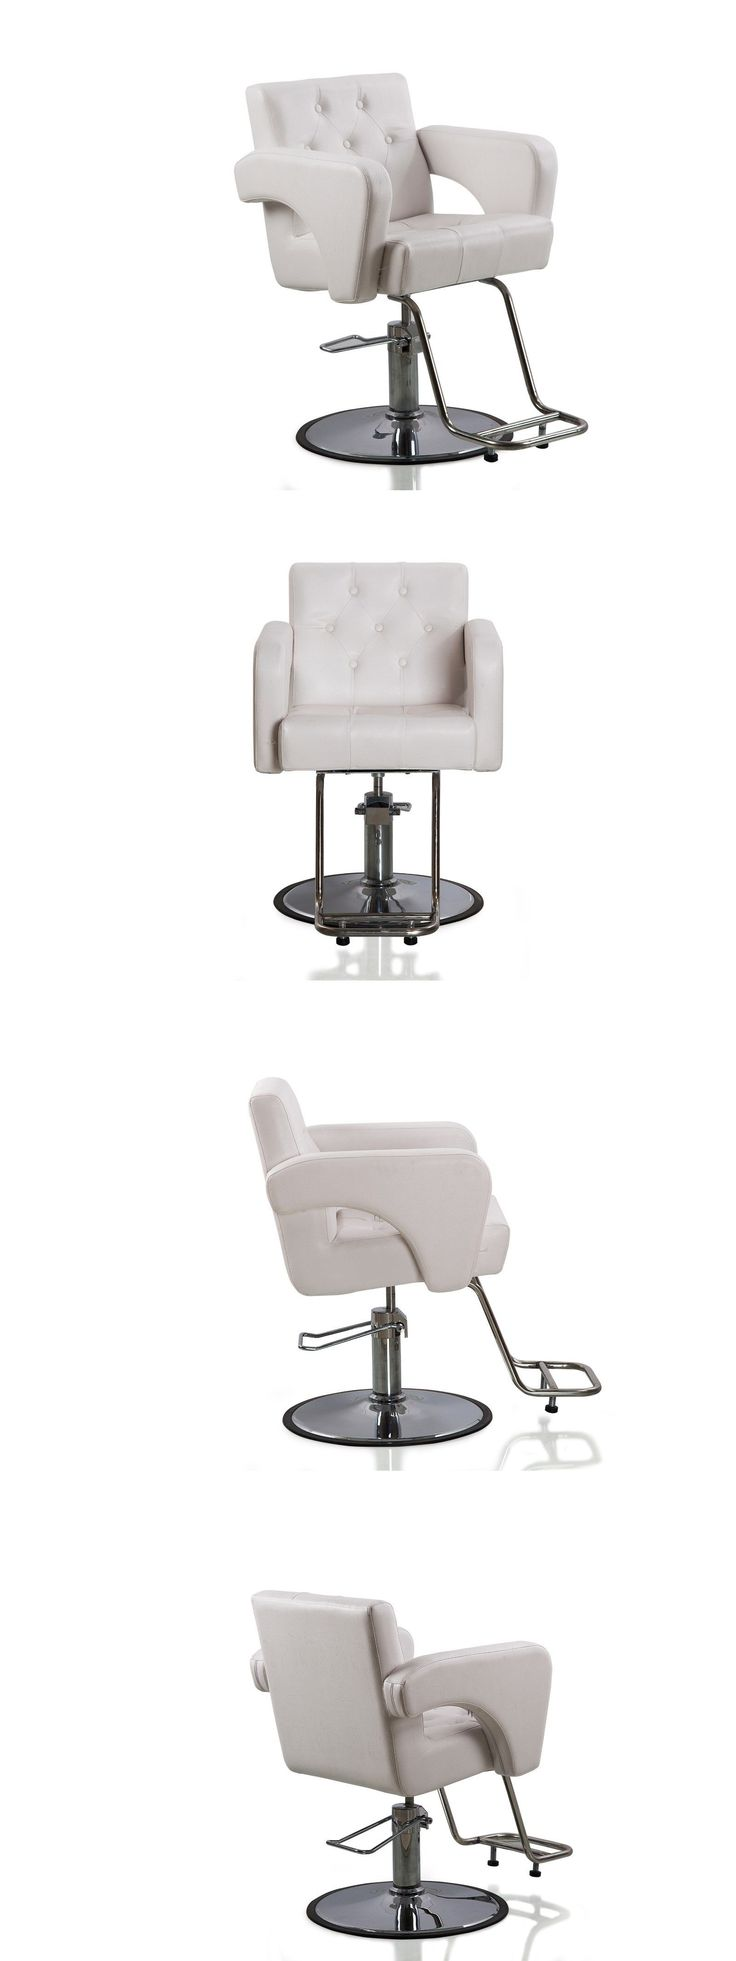 Wood swivel desk chair laquered finish warms amp padded seat ebay - Stylist Stations And Furniture Hydraulic Styling Barber Chair Hair Spa Beauty Salon Equipment